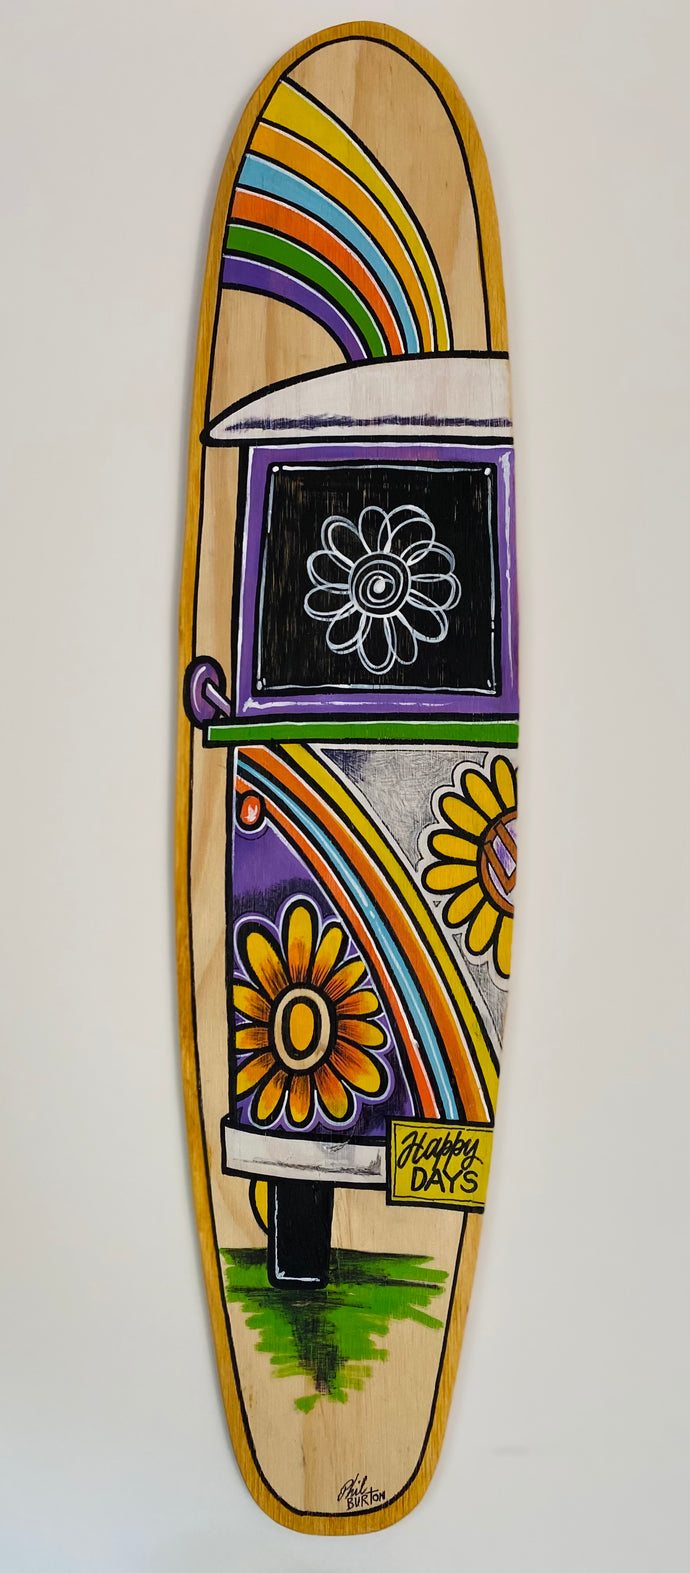 Kombi and Surf Original Handmade mini long board - vertical - approx 78 x 18 cm